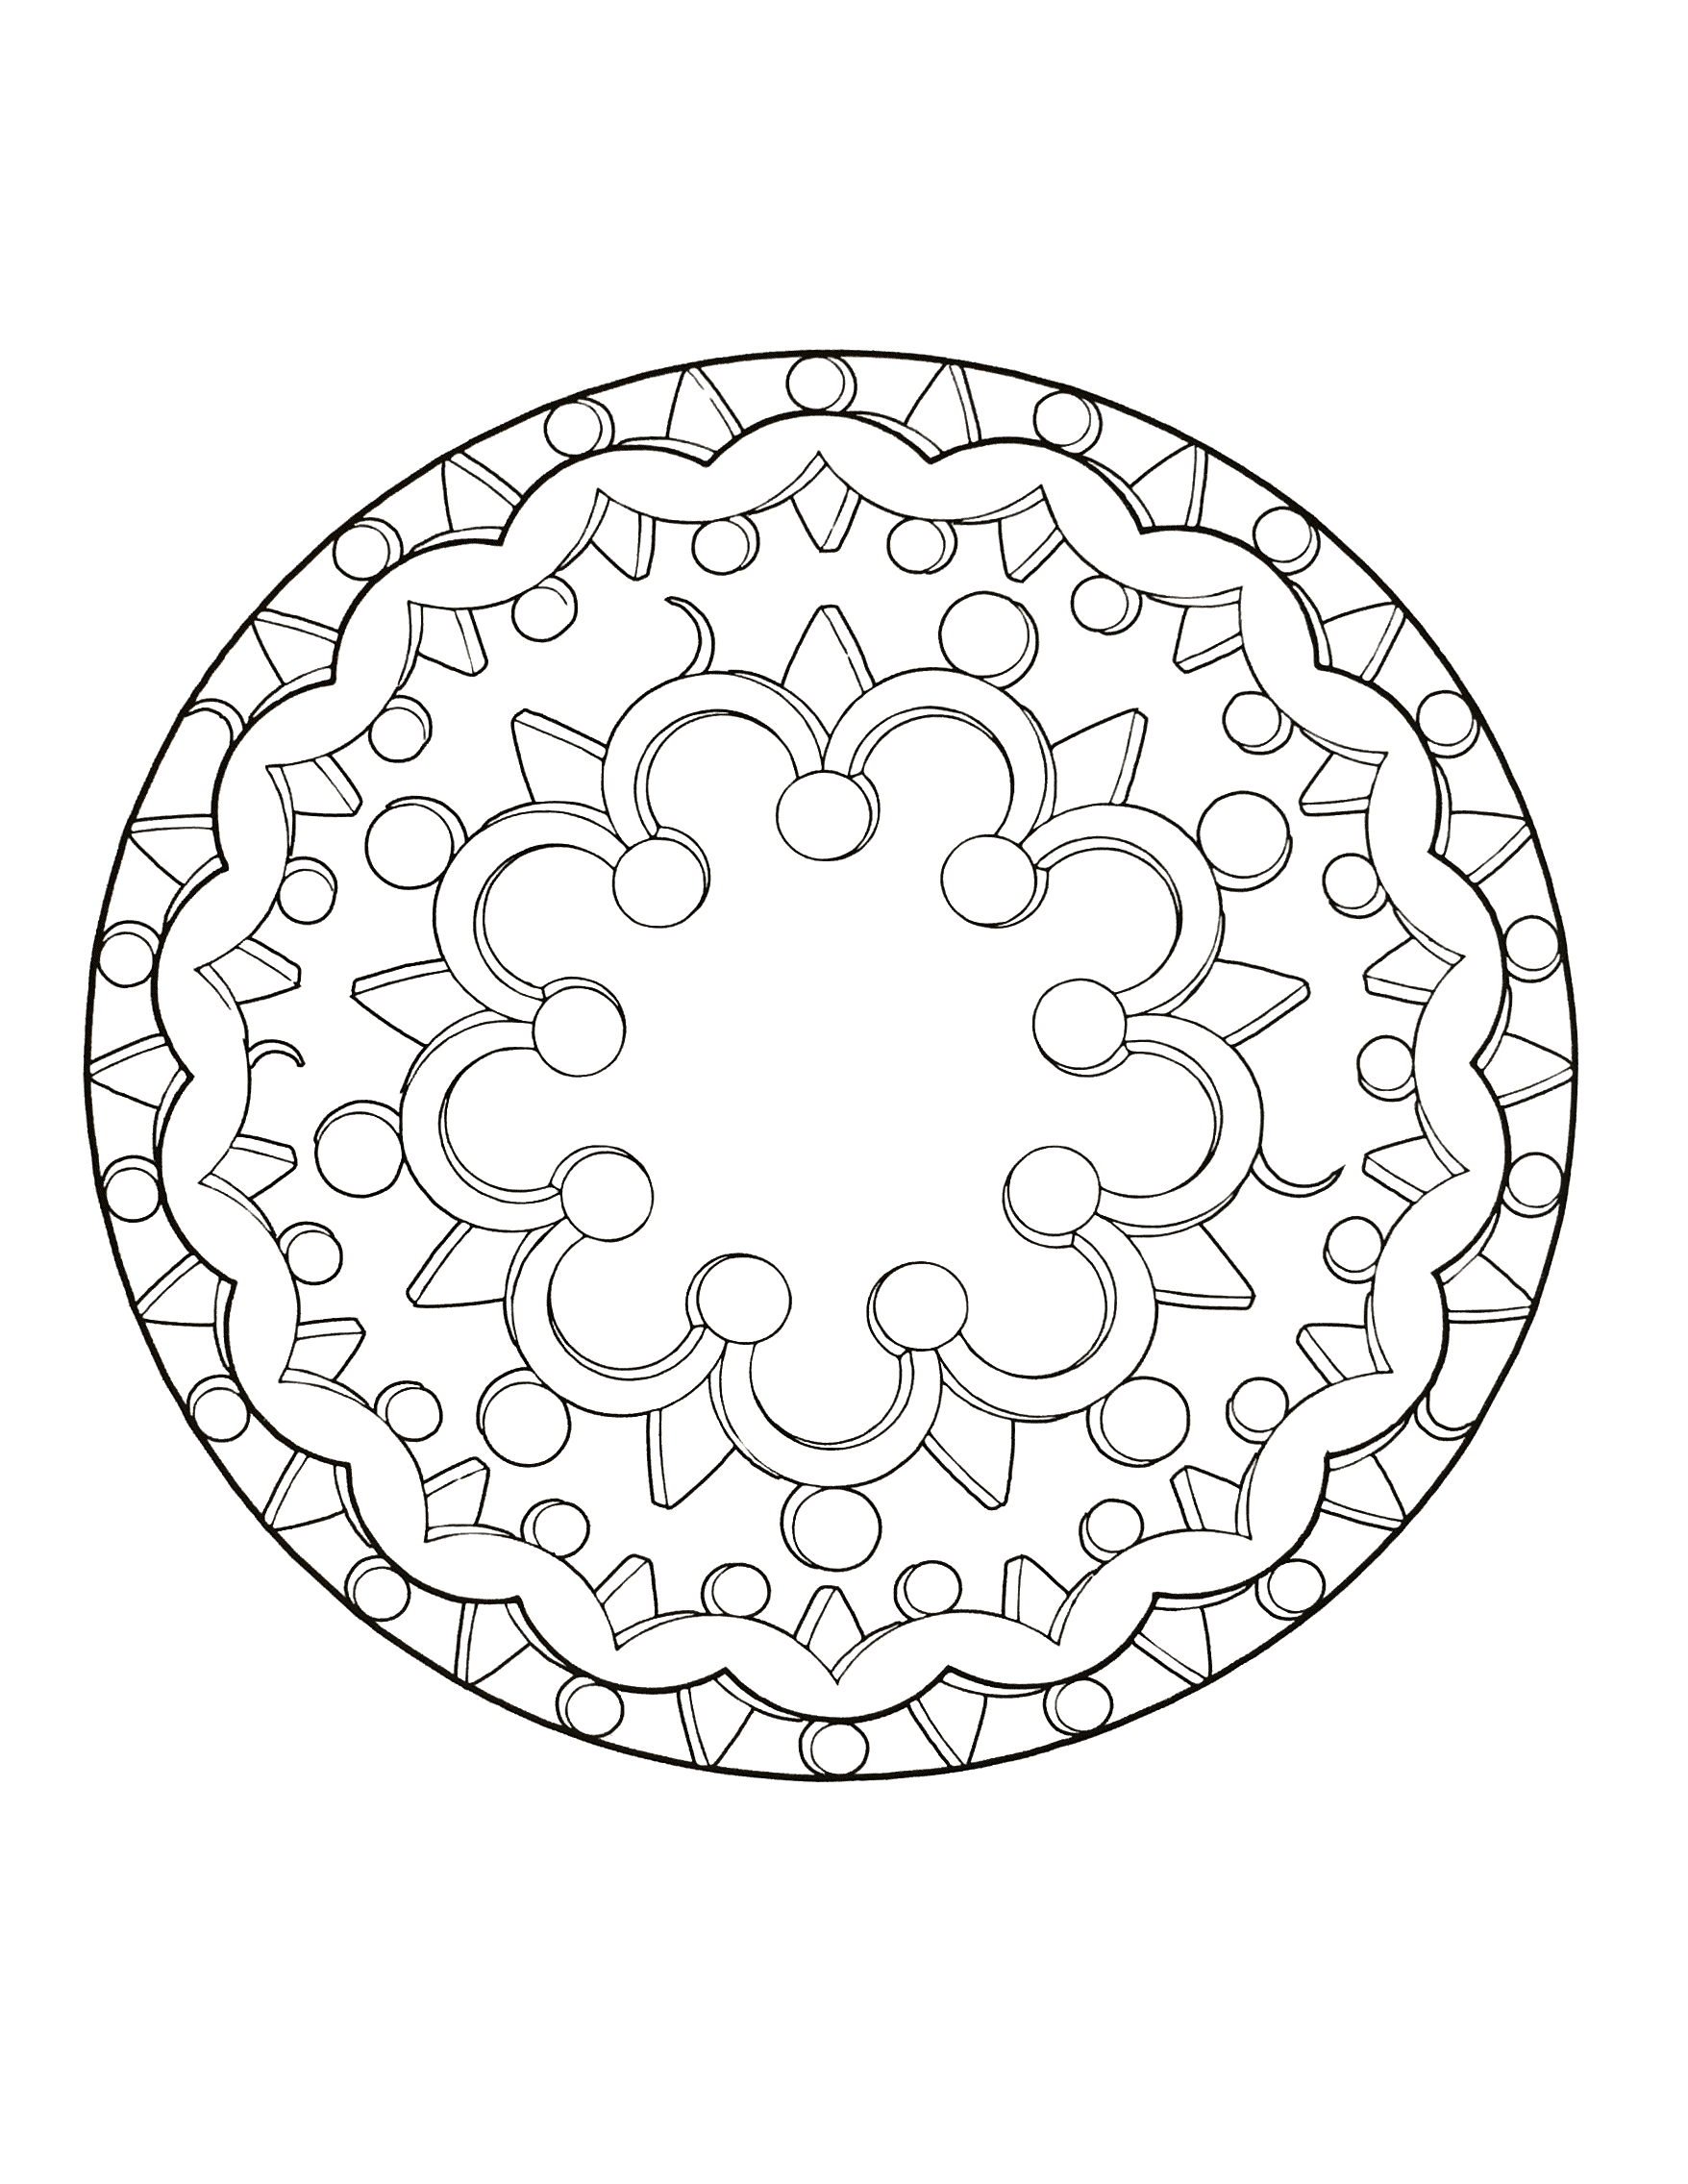 coloring pages for kids simple mandala 62 print - Simple Mandala Coloring Pages